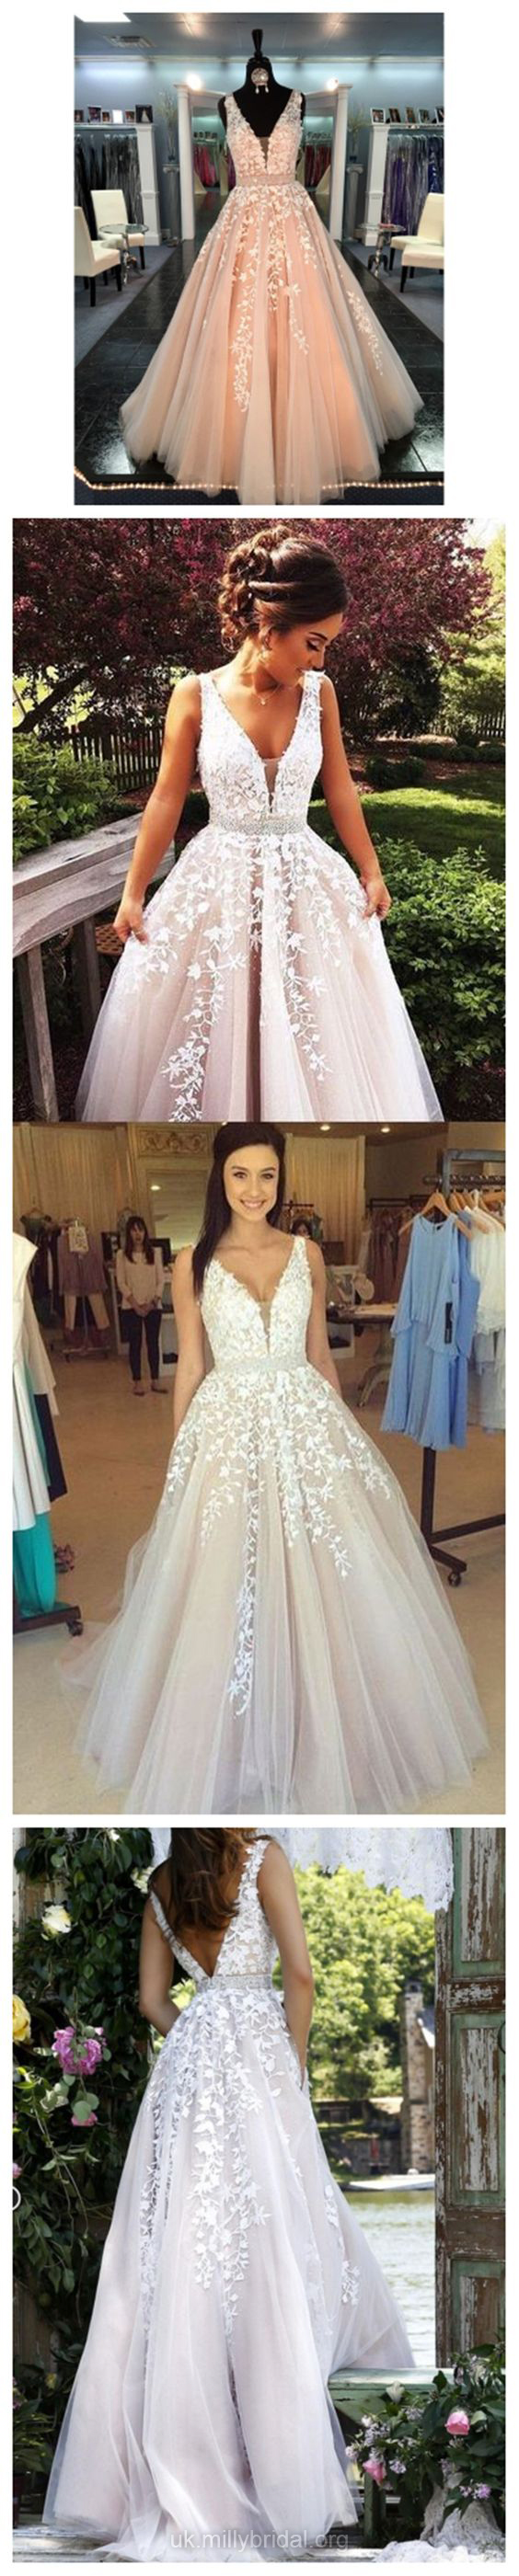 Vneck prom dresses pink long party dresses ball gown lace formal